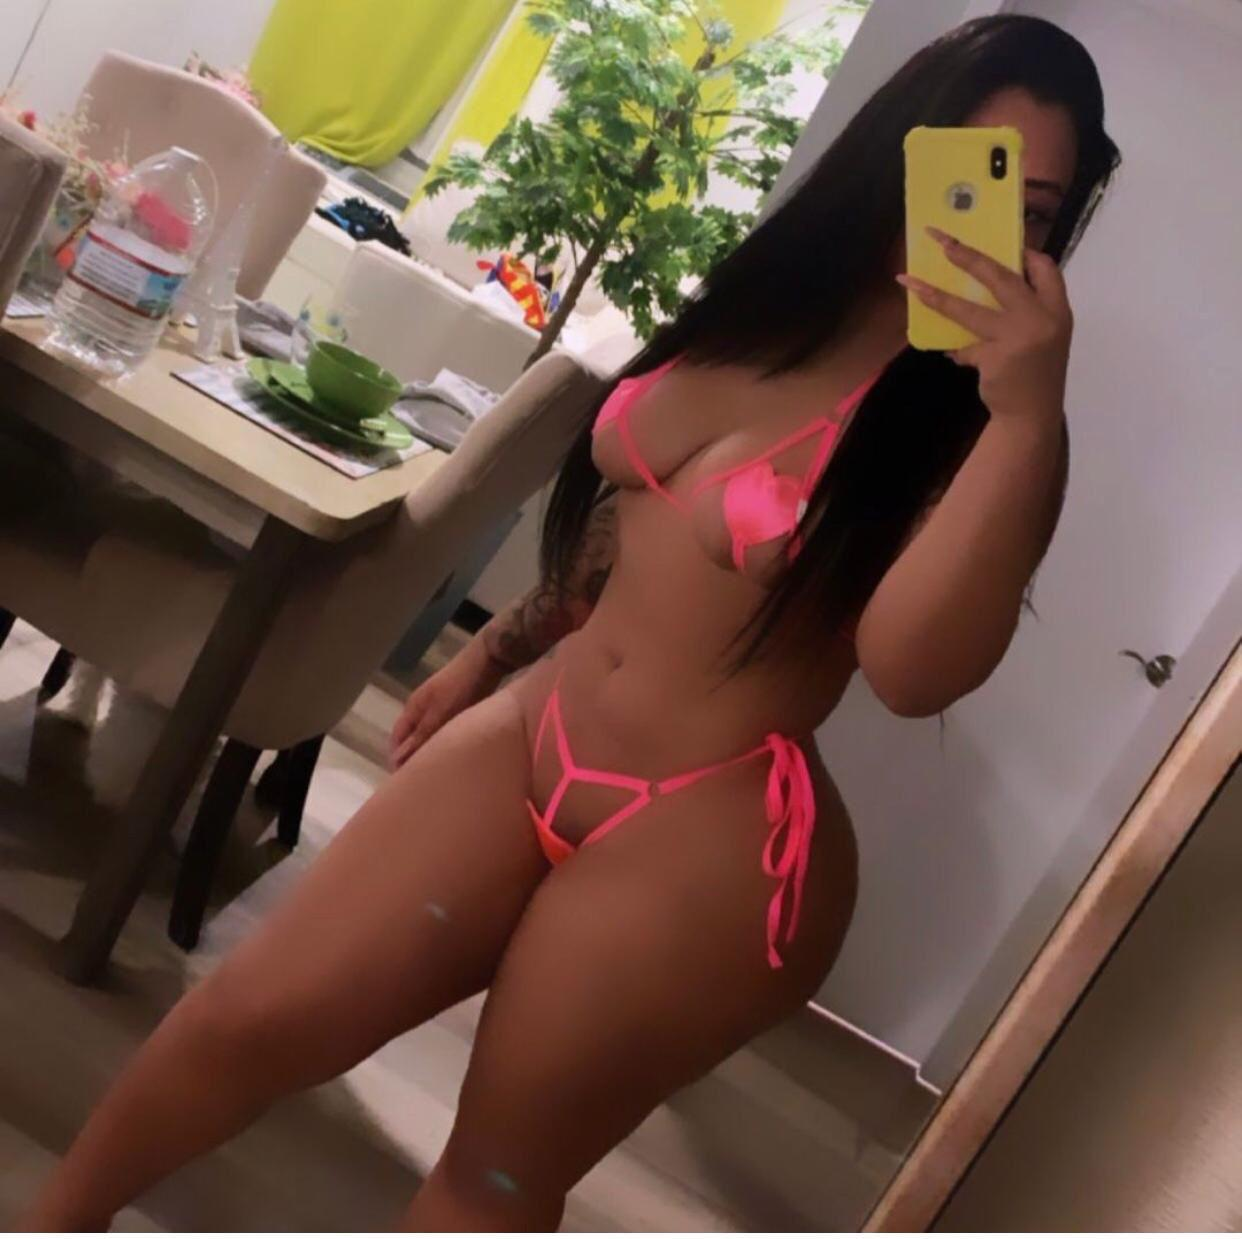 Latina Avail 24 7 now call 408 740 9639 Dad Special 100 dollars an hour